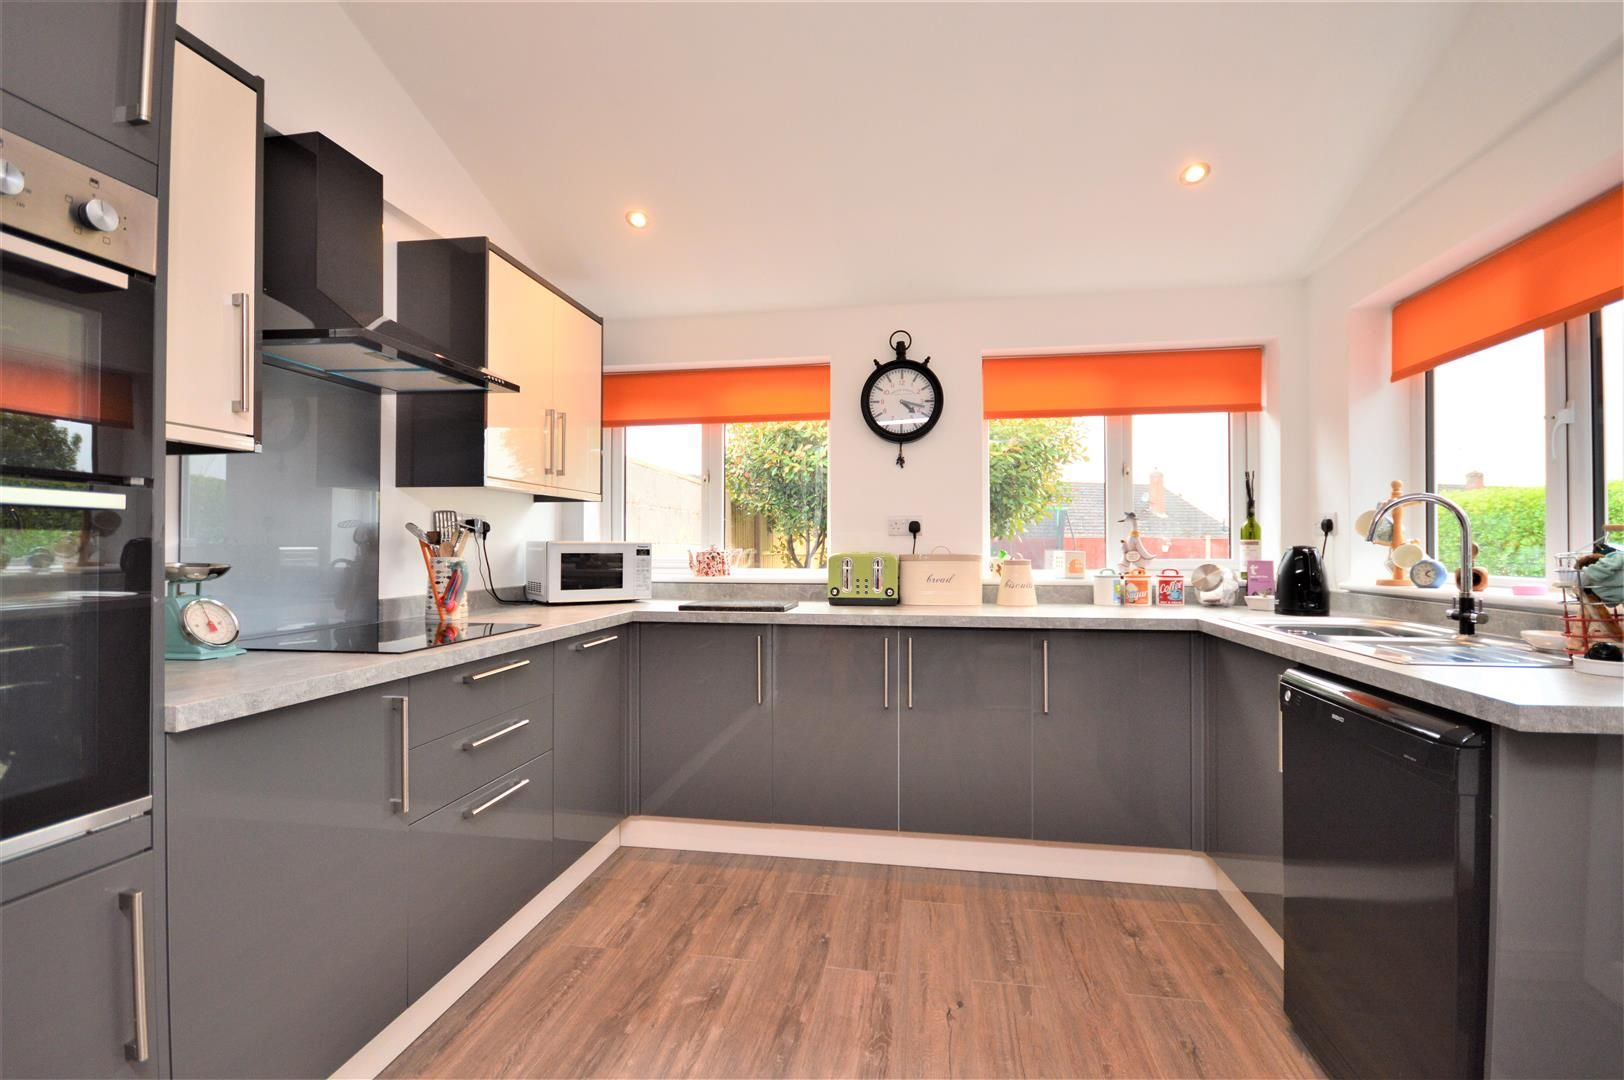 4 bed semi-detached for sale in Clehonger  - Property Image 5